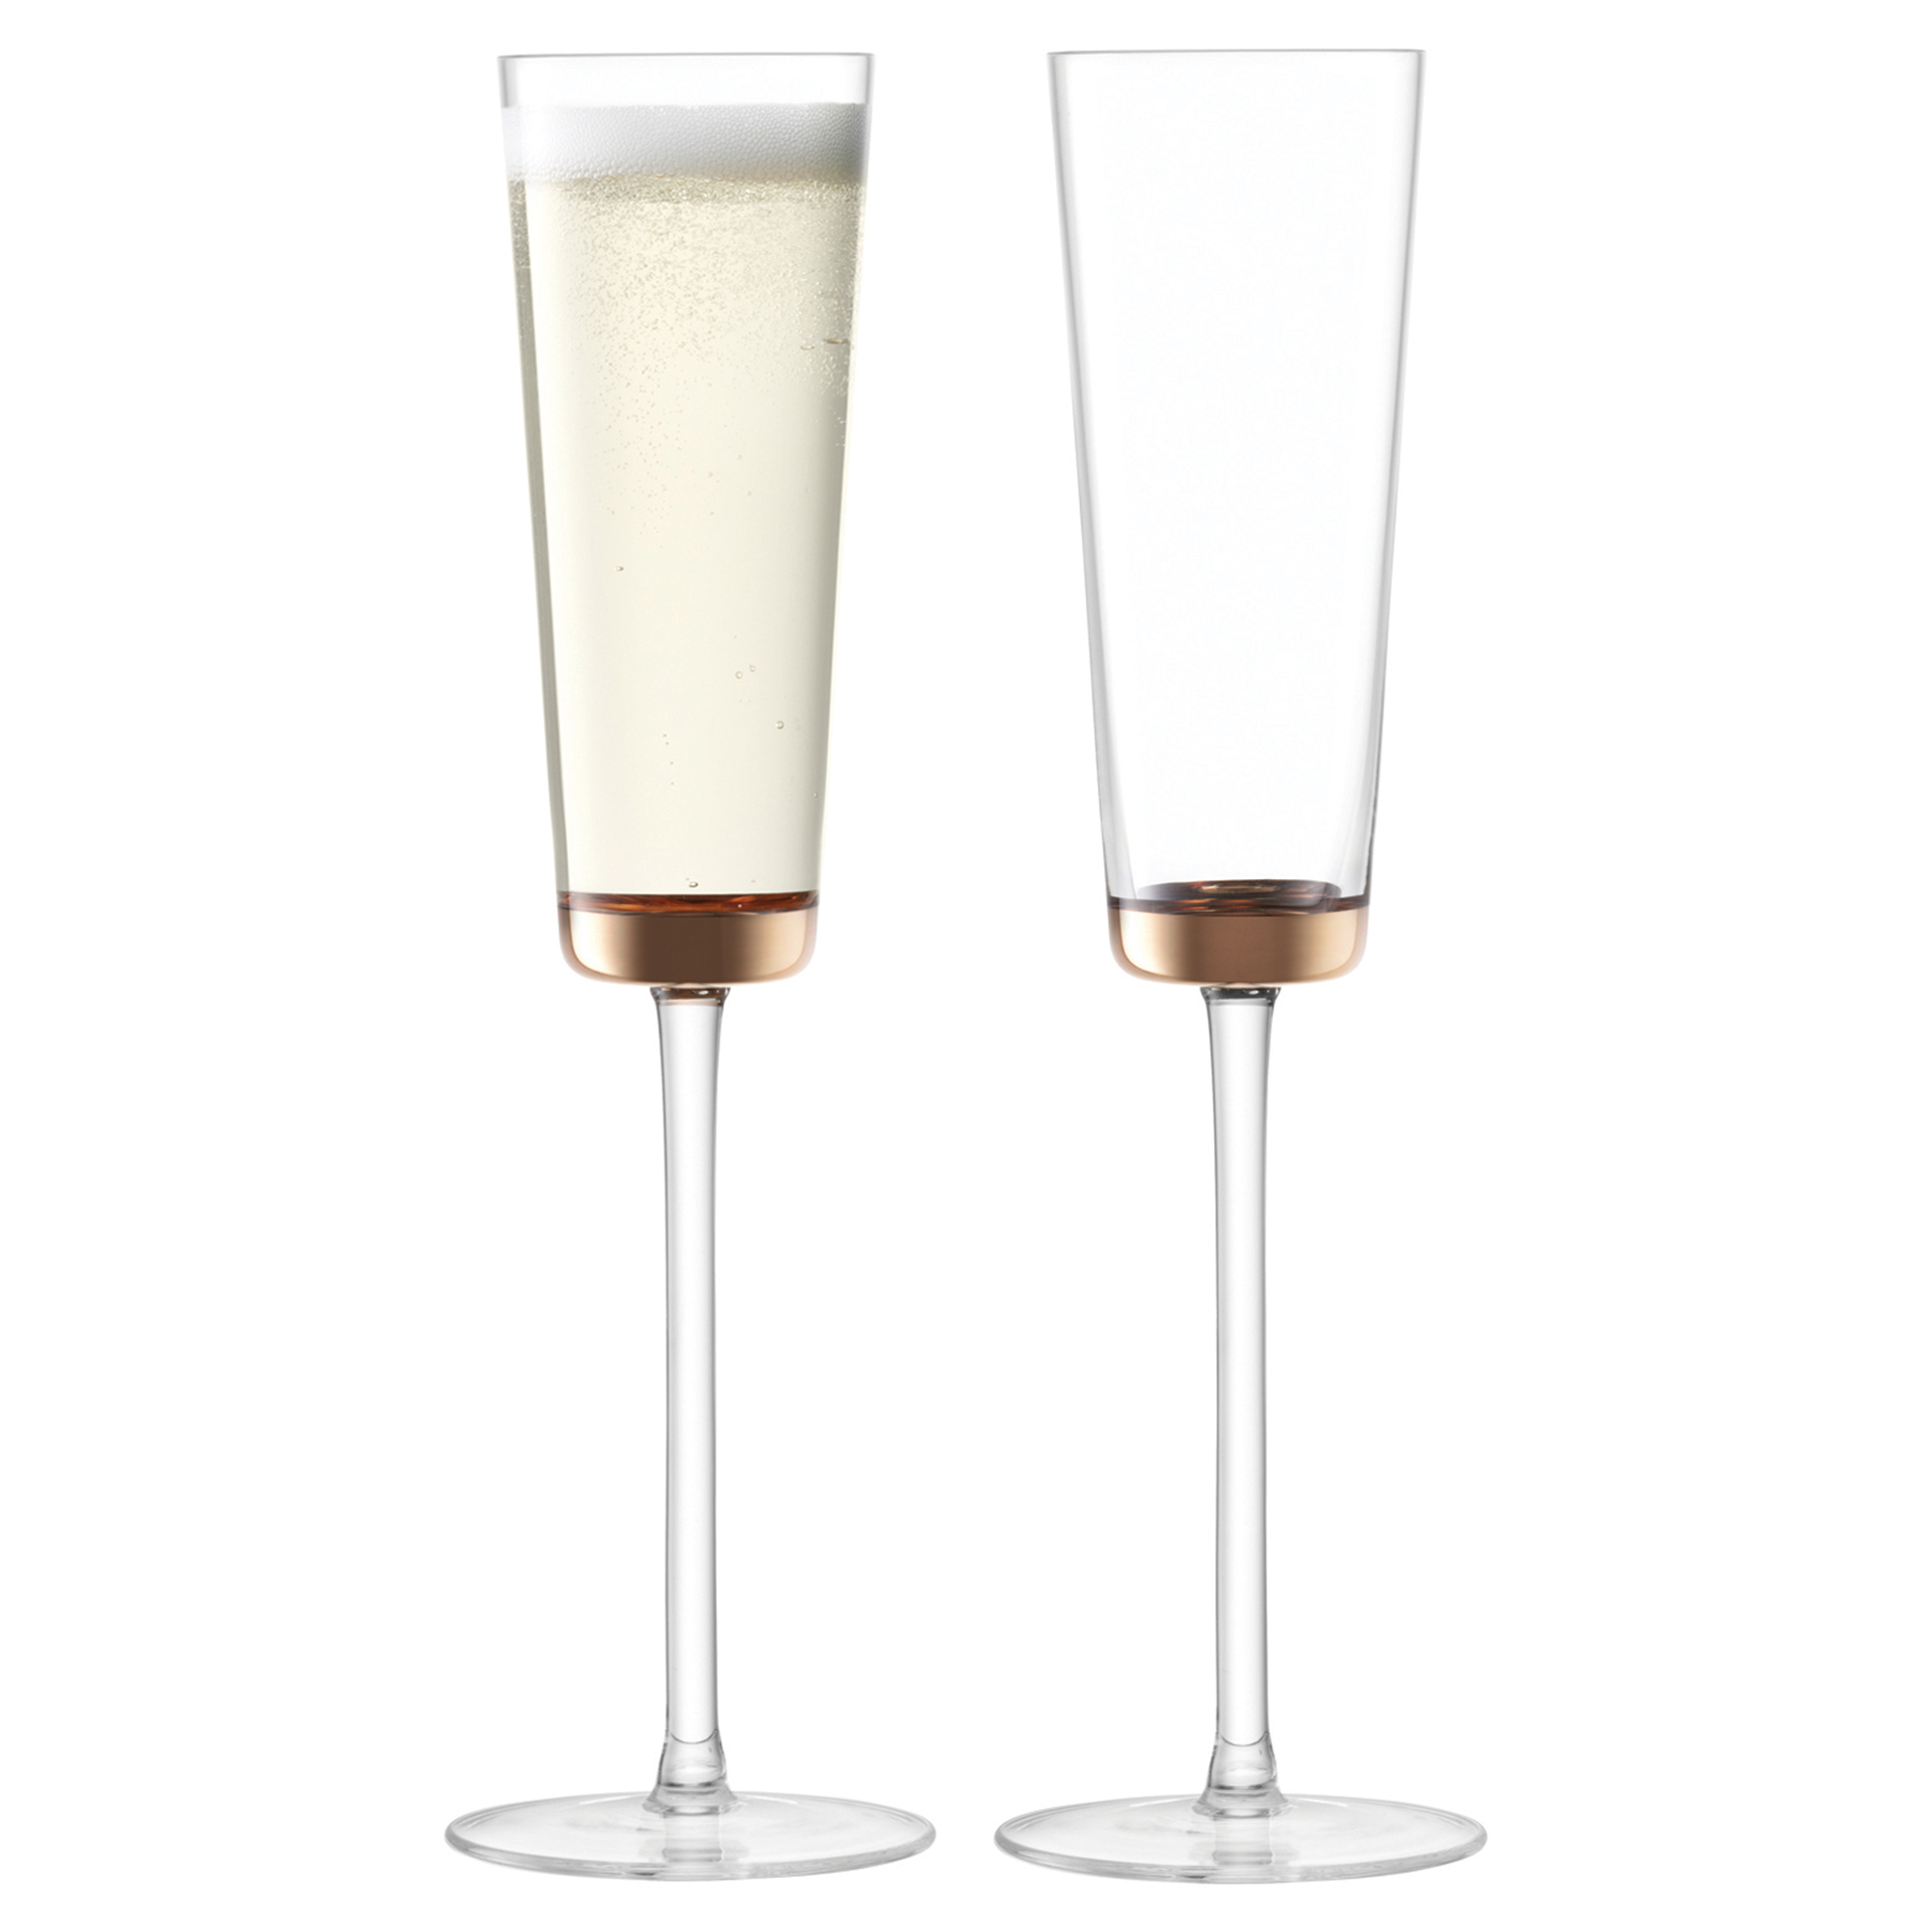 LSA Edge Champagne Flutes Rose Gold 160ml at drinkstuff